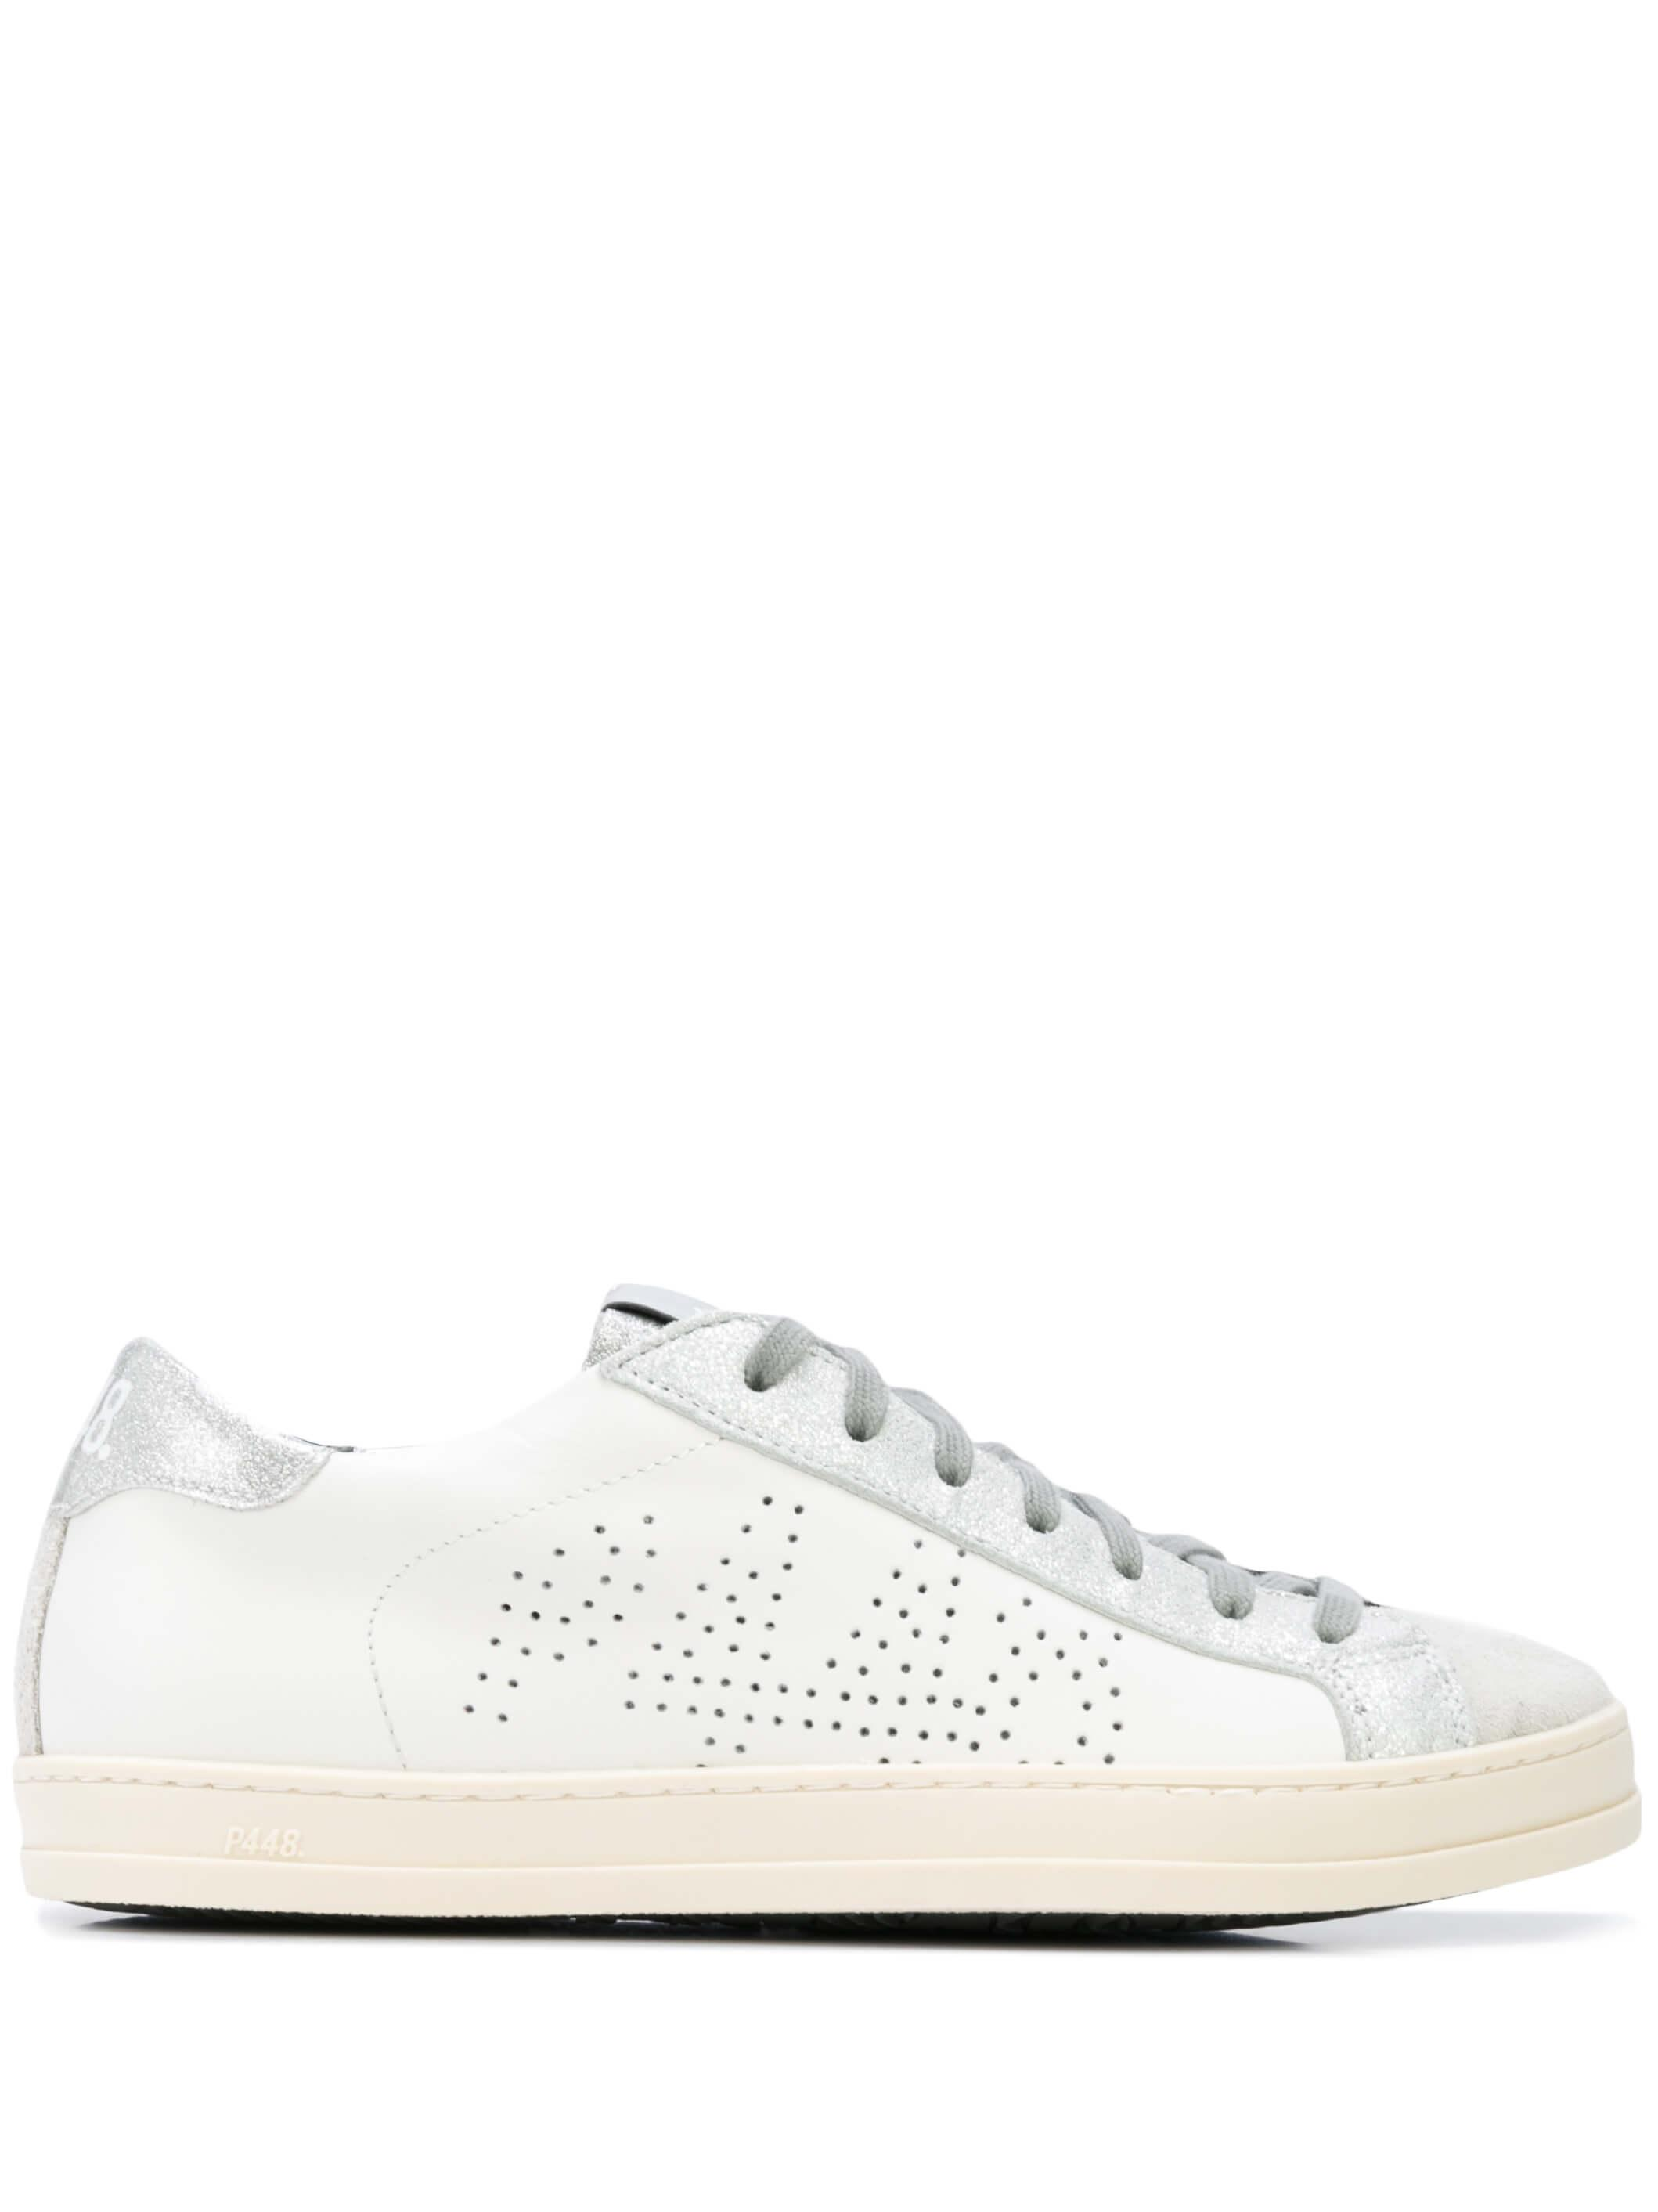 Leather Sneaker With Metallic Shimmer Tongue Item # S20JOHN-W